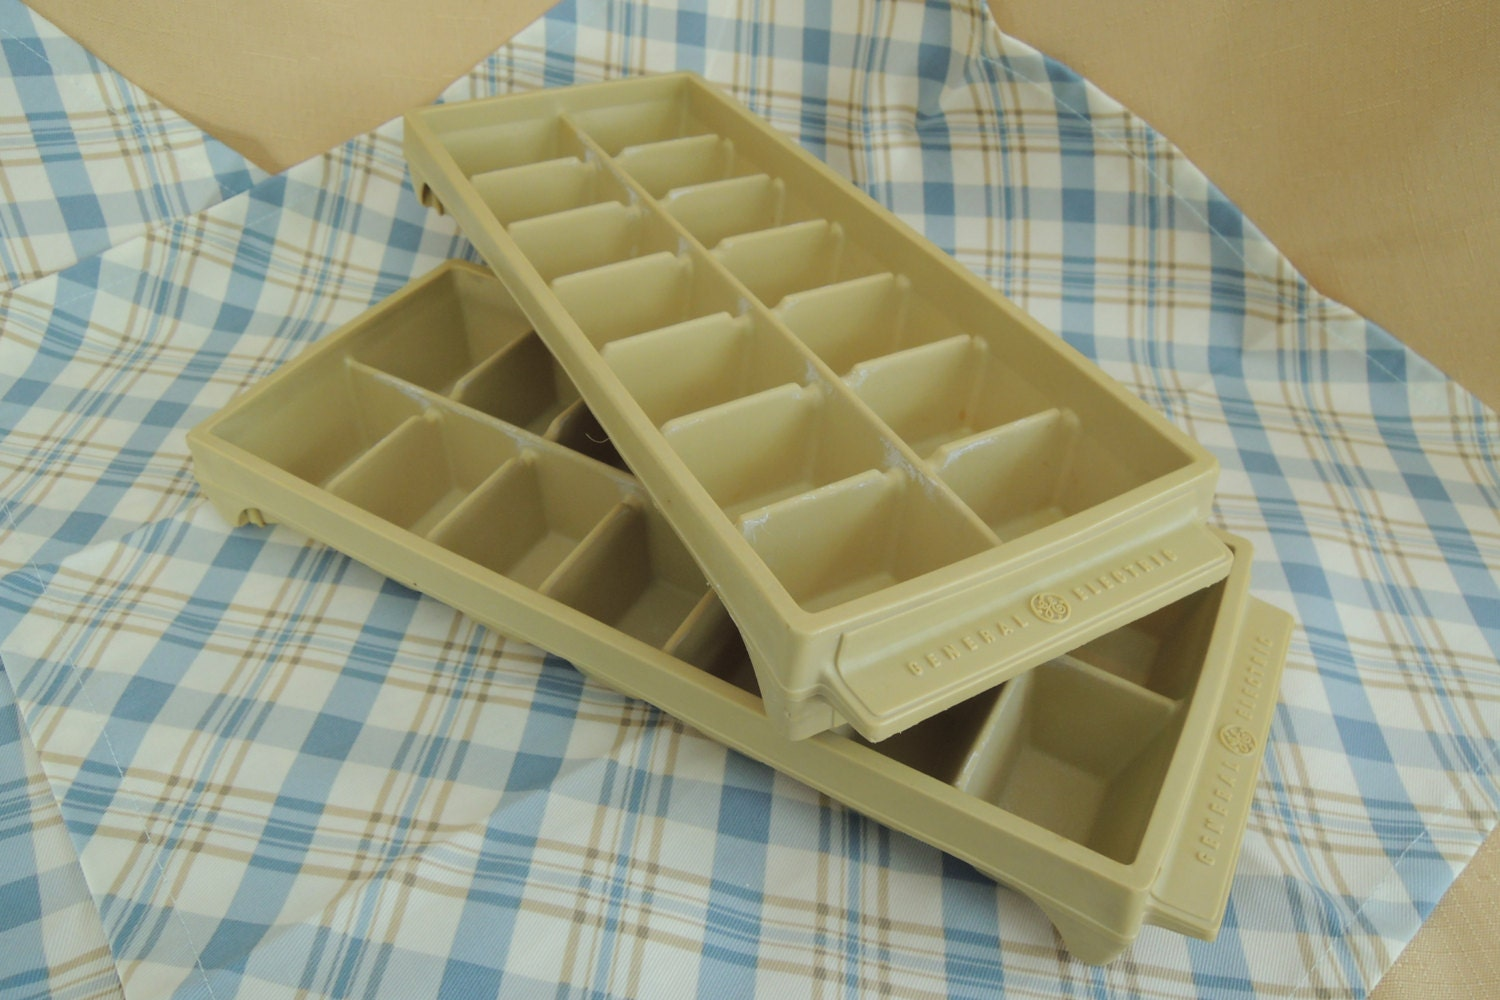 General Electric Ice Cube Trays Heavy plastic Harvest gold